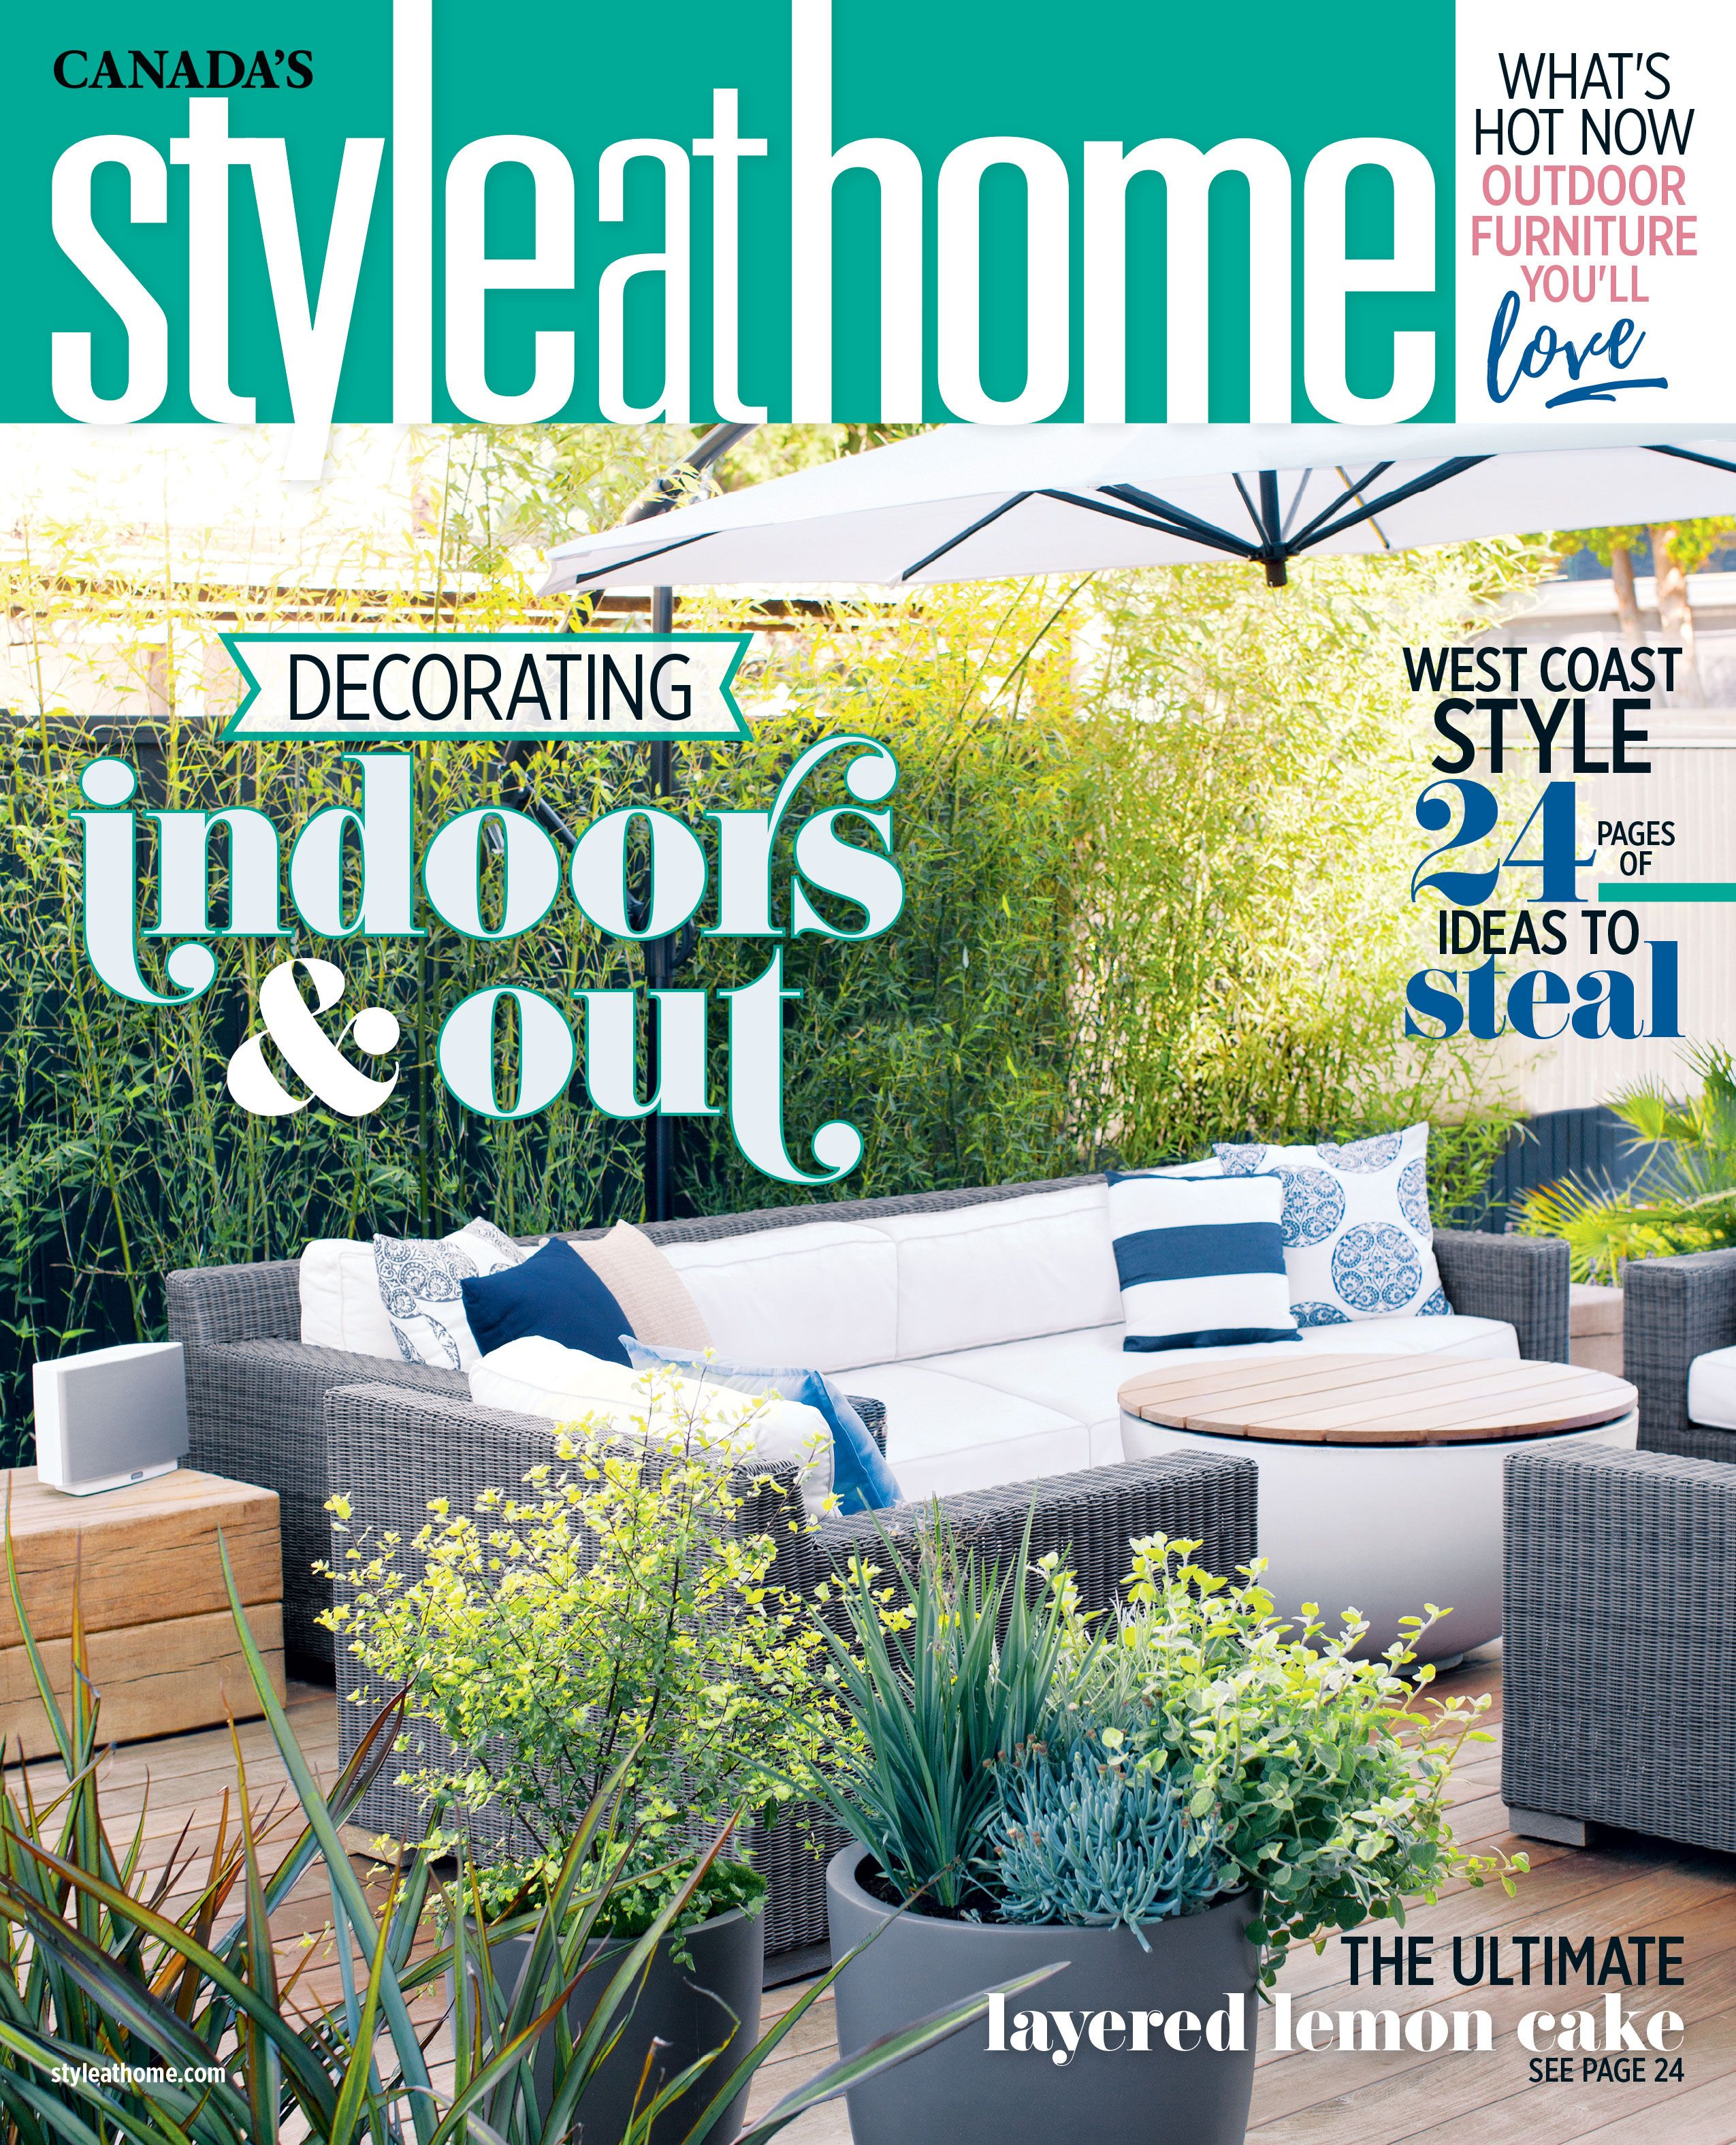 Outdoor decor ideas for under $50 | Magazine covers, Southern living ...